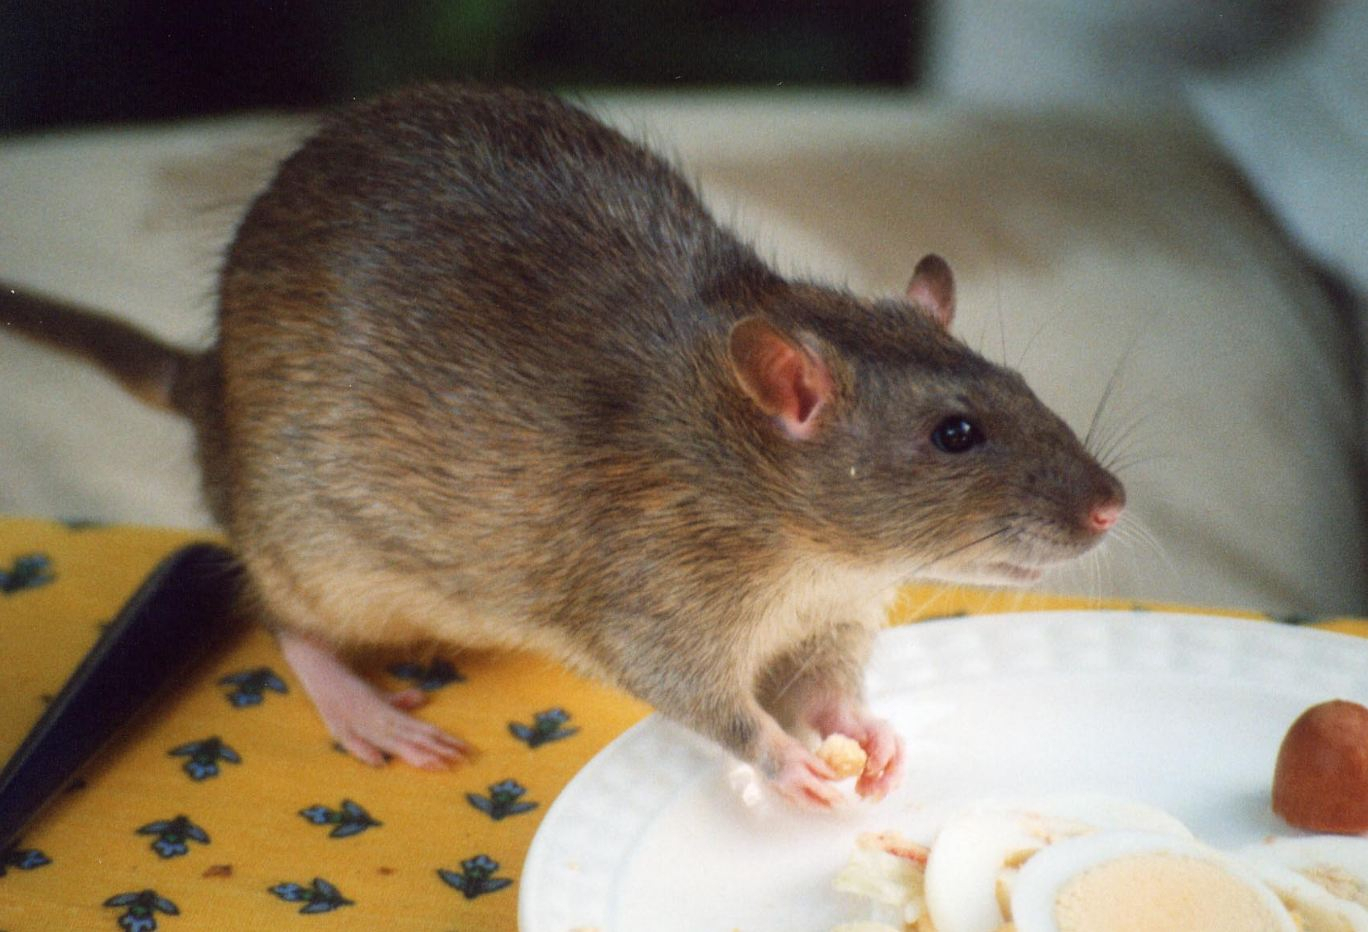 Hantavirus - from rats - caused death of man on bus in China